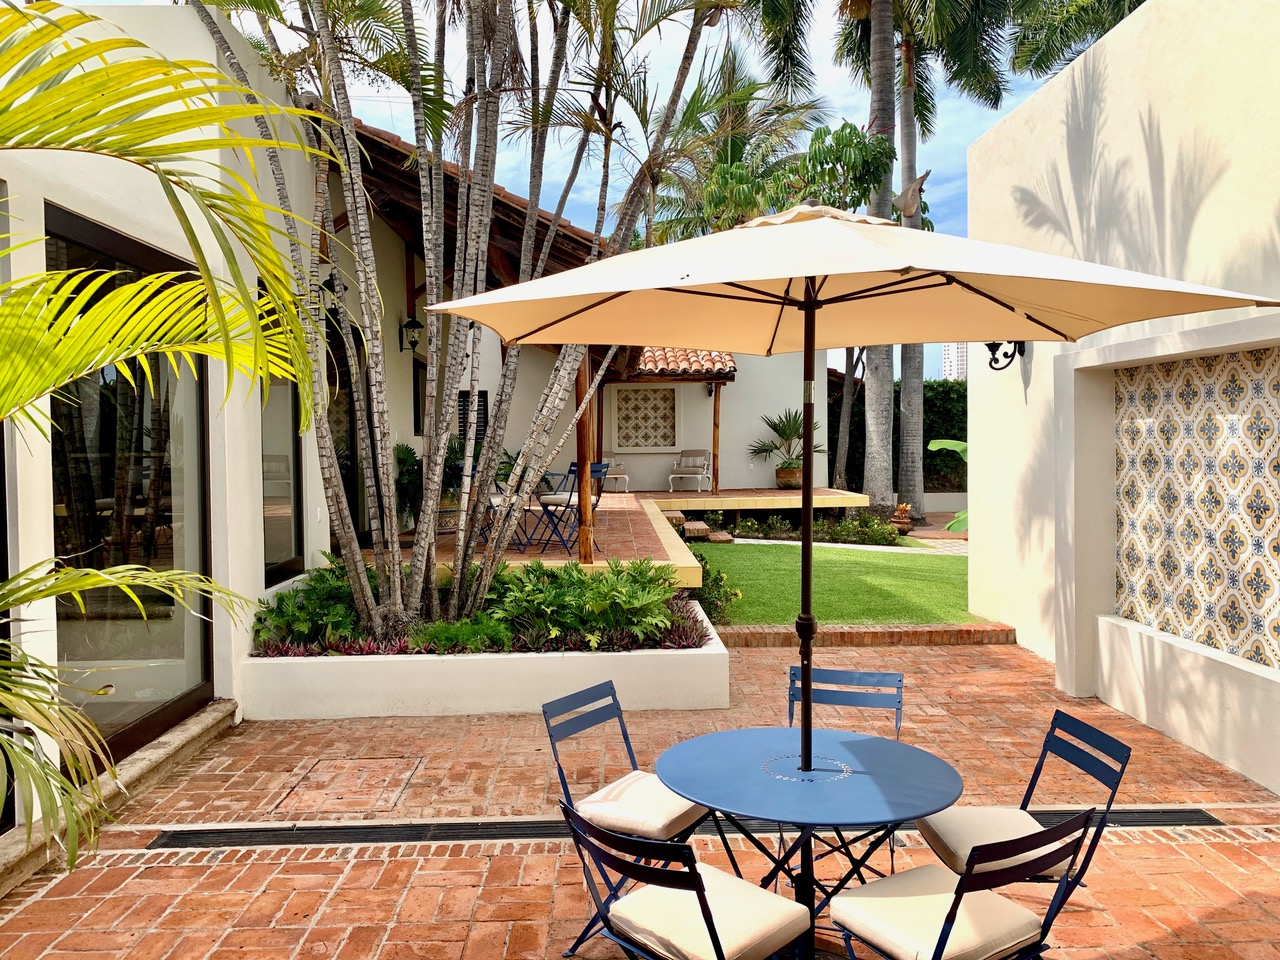 Outdoor dining area with shade umbrella.